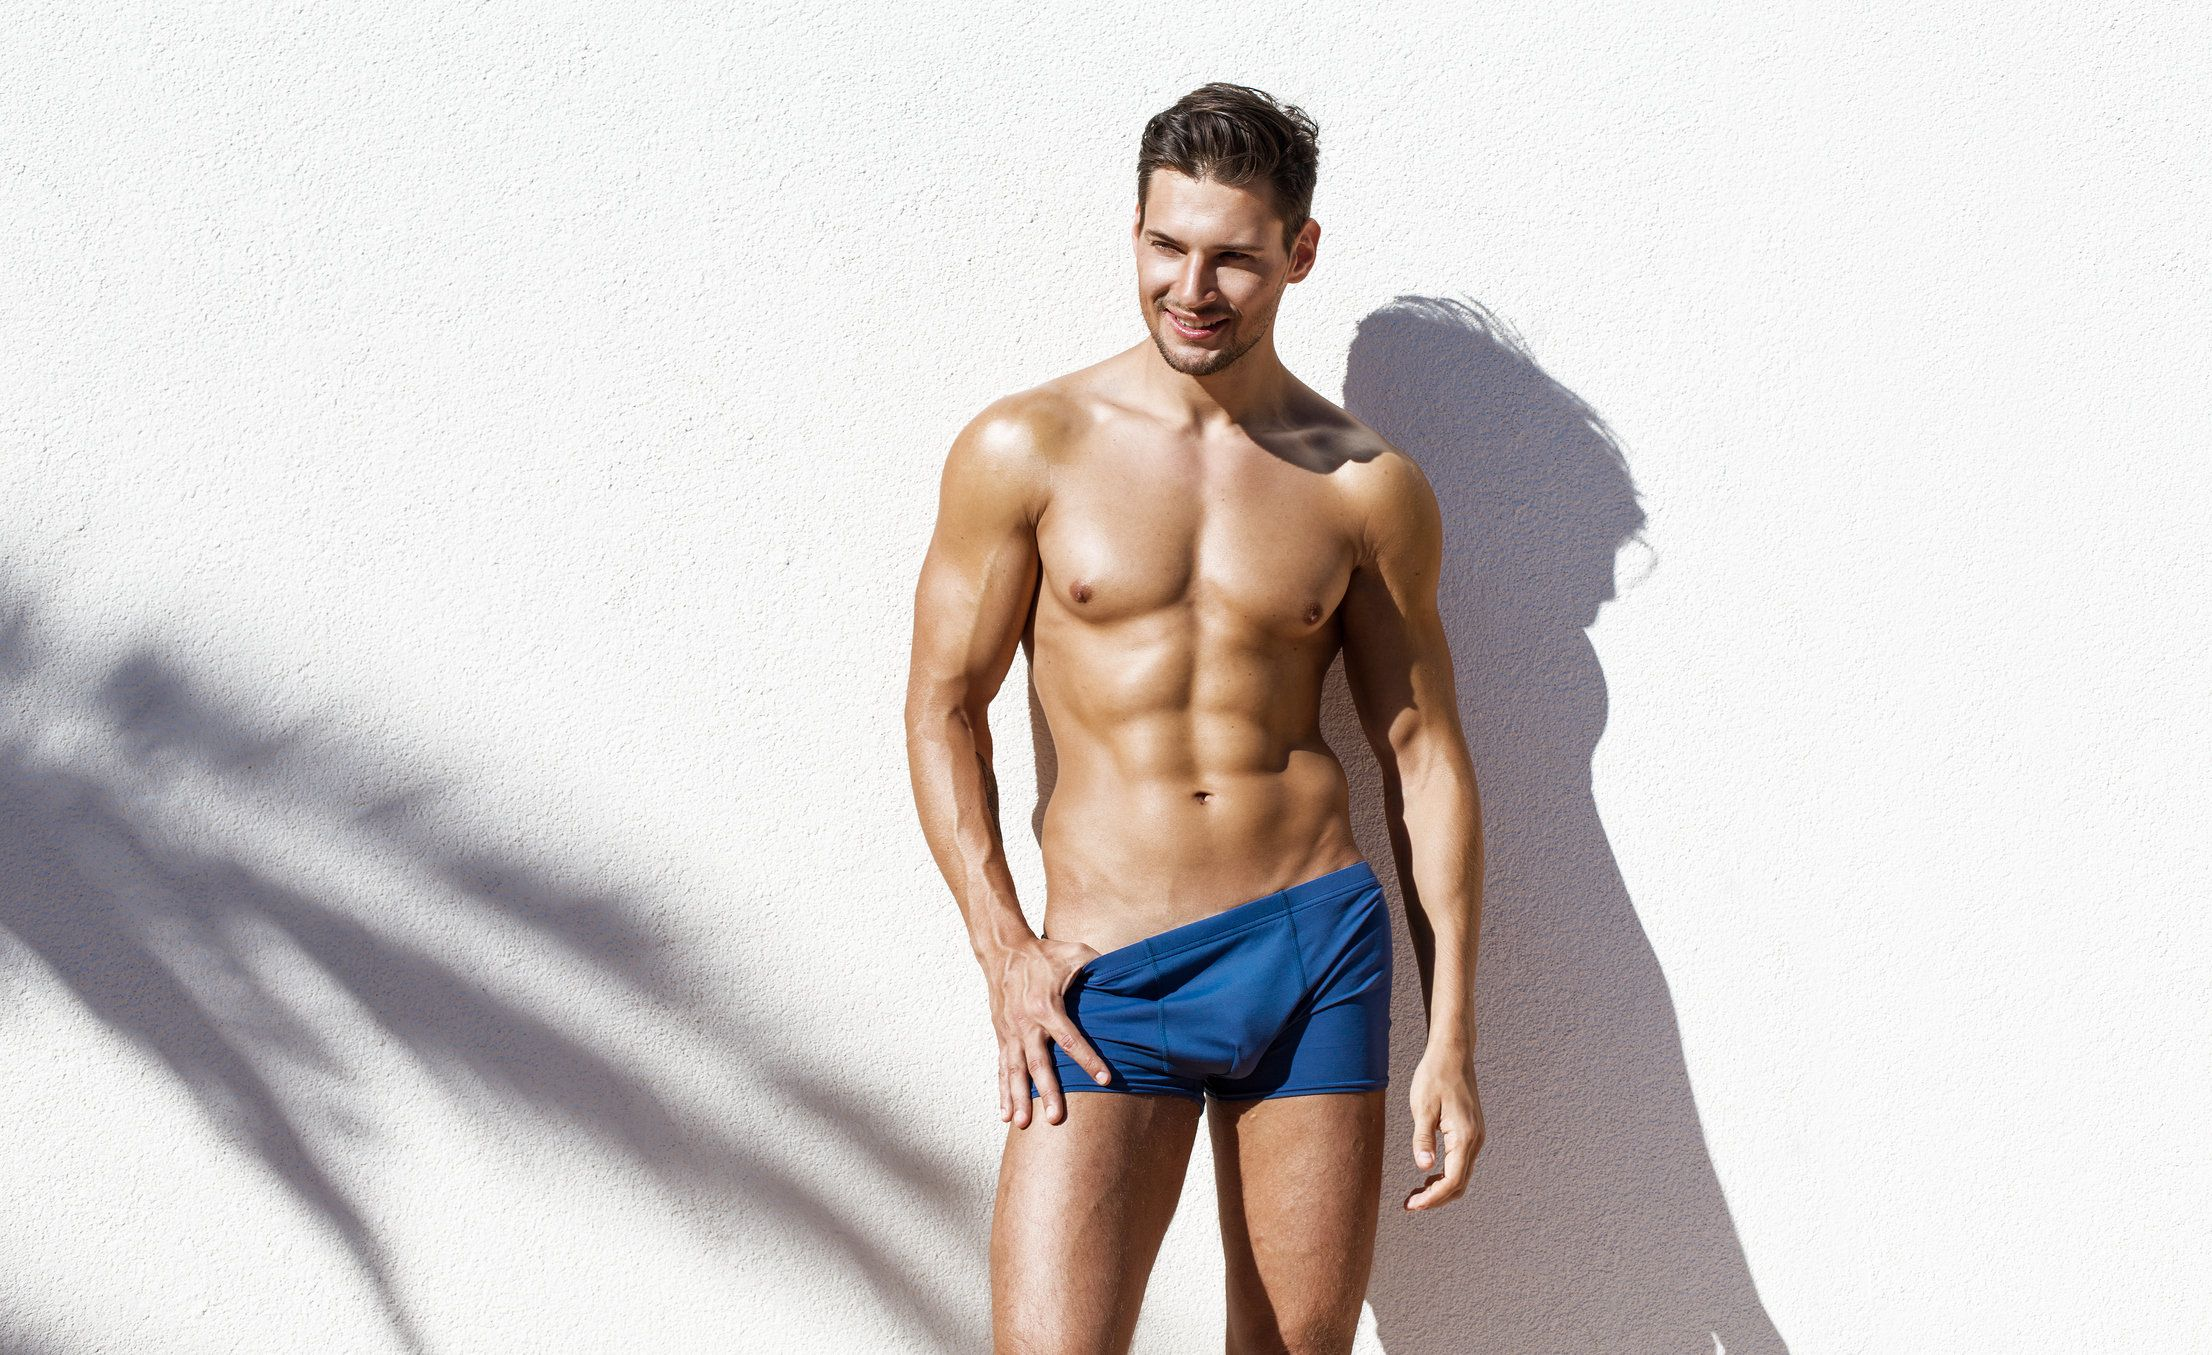 Handsome atletic man wearing swimming trunks